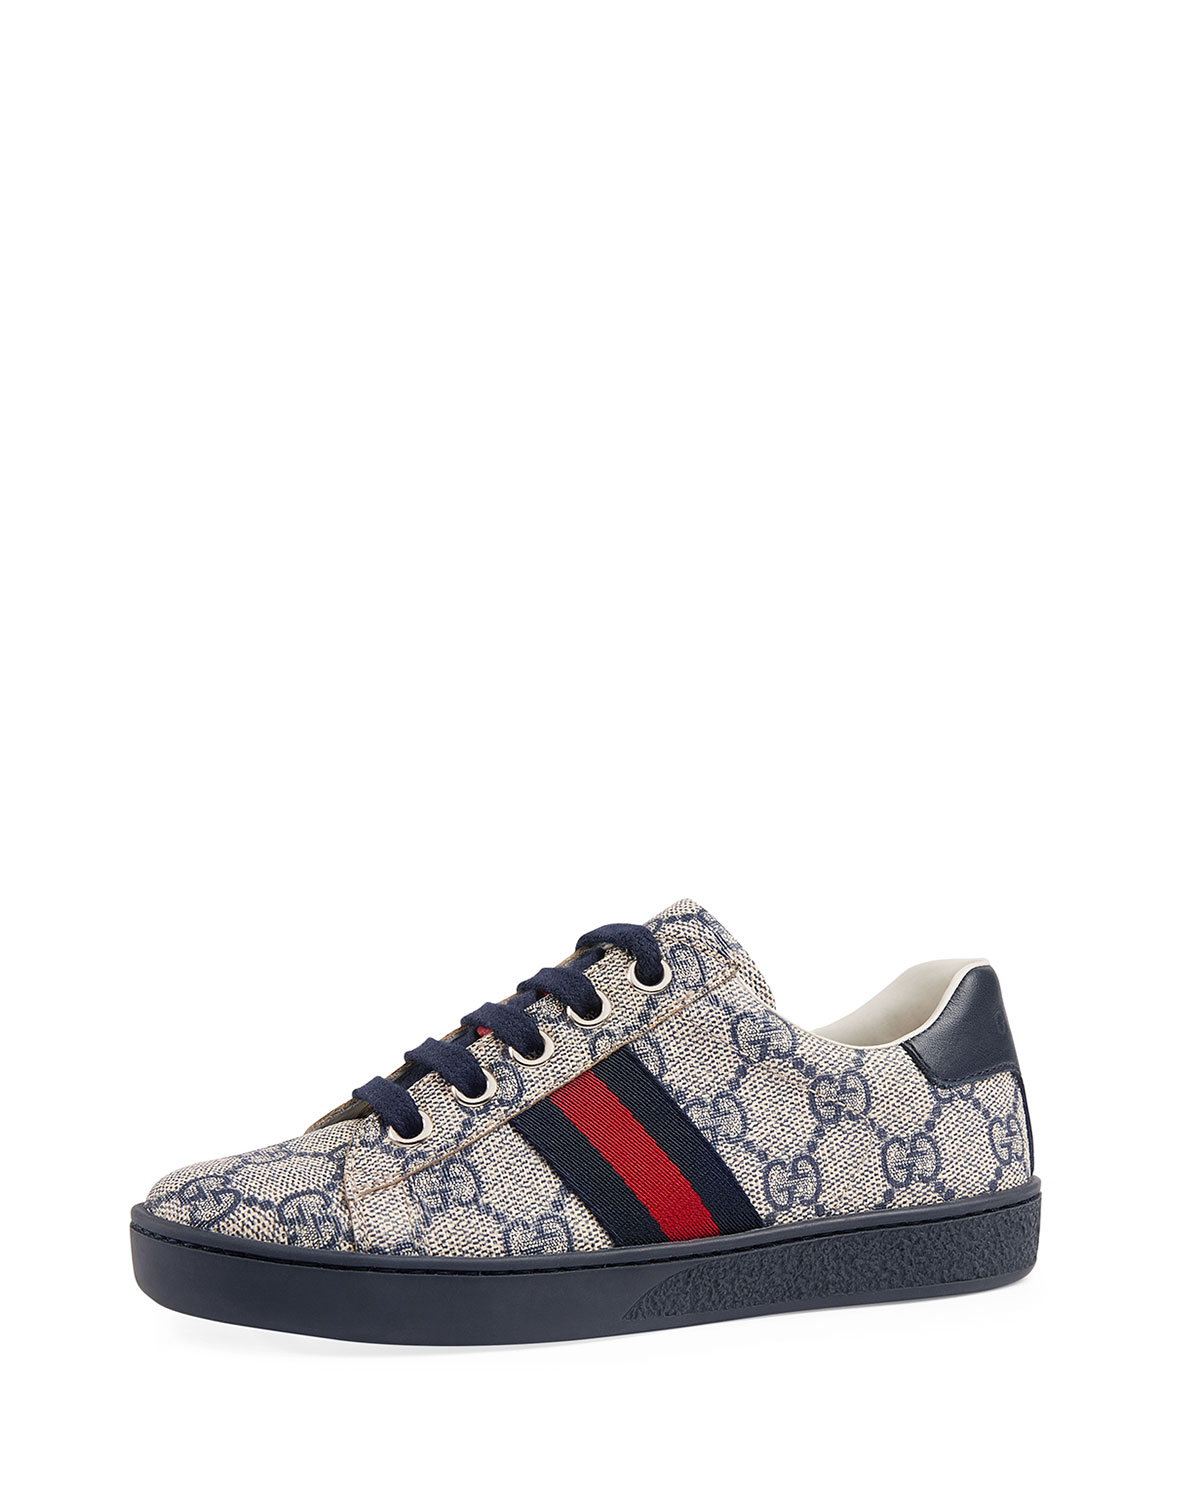 f460cafe2199 Gucci Lace Up Sneaker Shoes